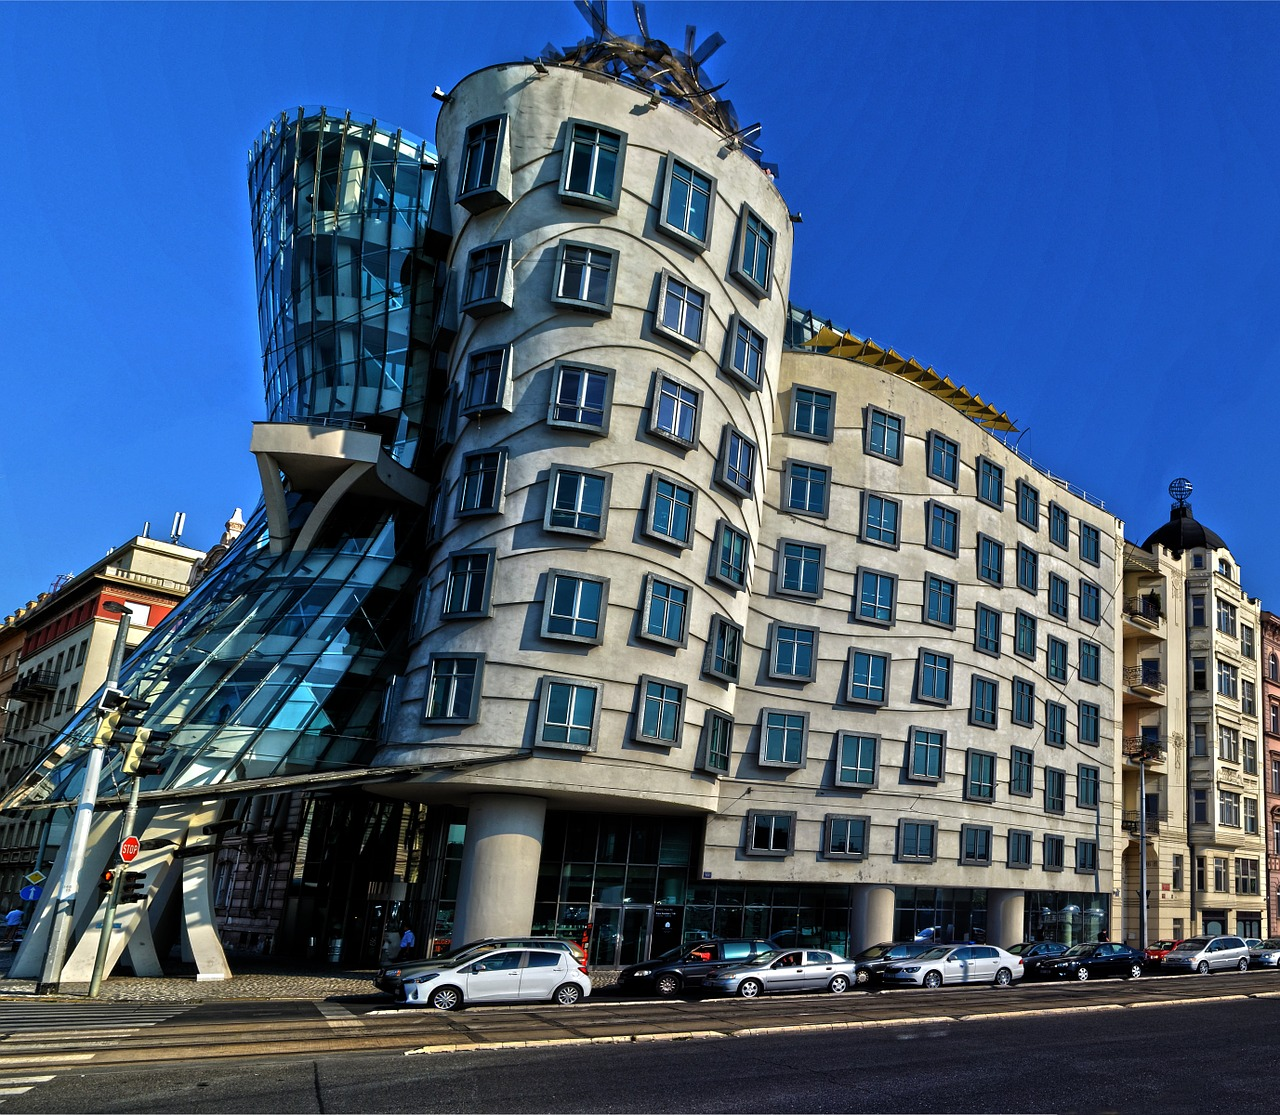 New Architectural Materials Are Creating Amazing Buildings